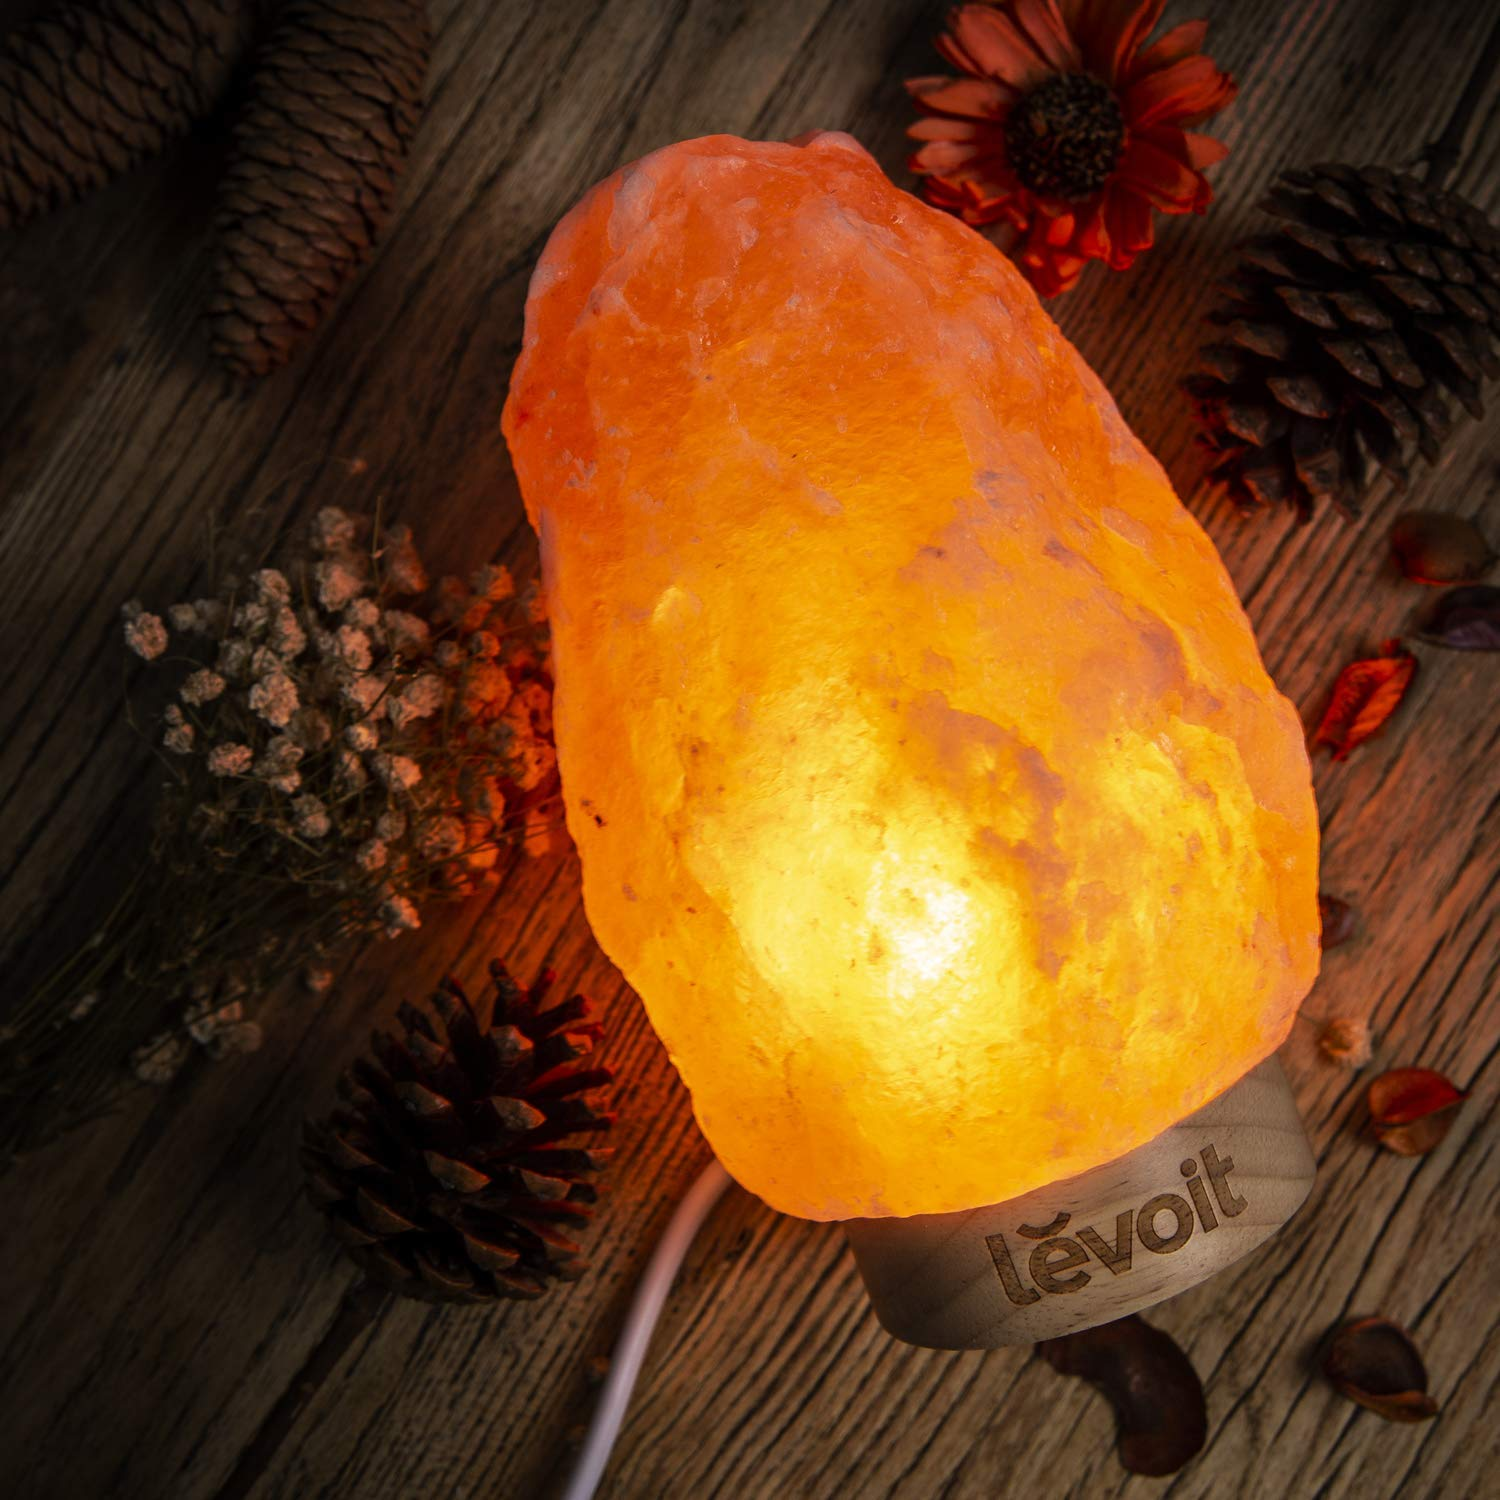 Levoit Kana Himalayan/Hymilain Sea, Pink Crystal Salt Rock Lamp, Night Light, Real Rubber Wood Base, Dimmable Touch Switch, Holiday Gift (ETL Certified, 2 Extra Bulbs), by LEVOIT (Image #7)